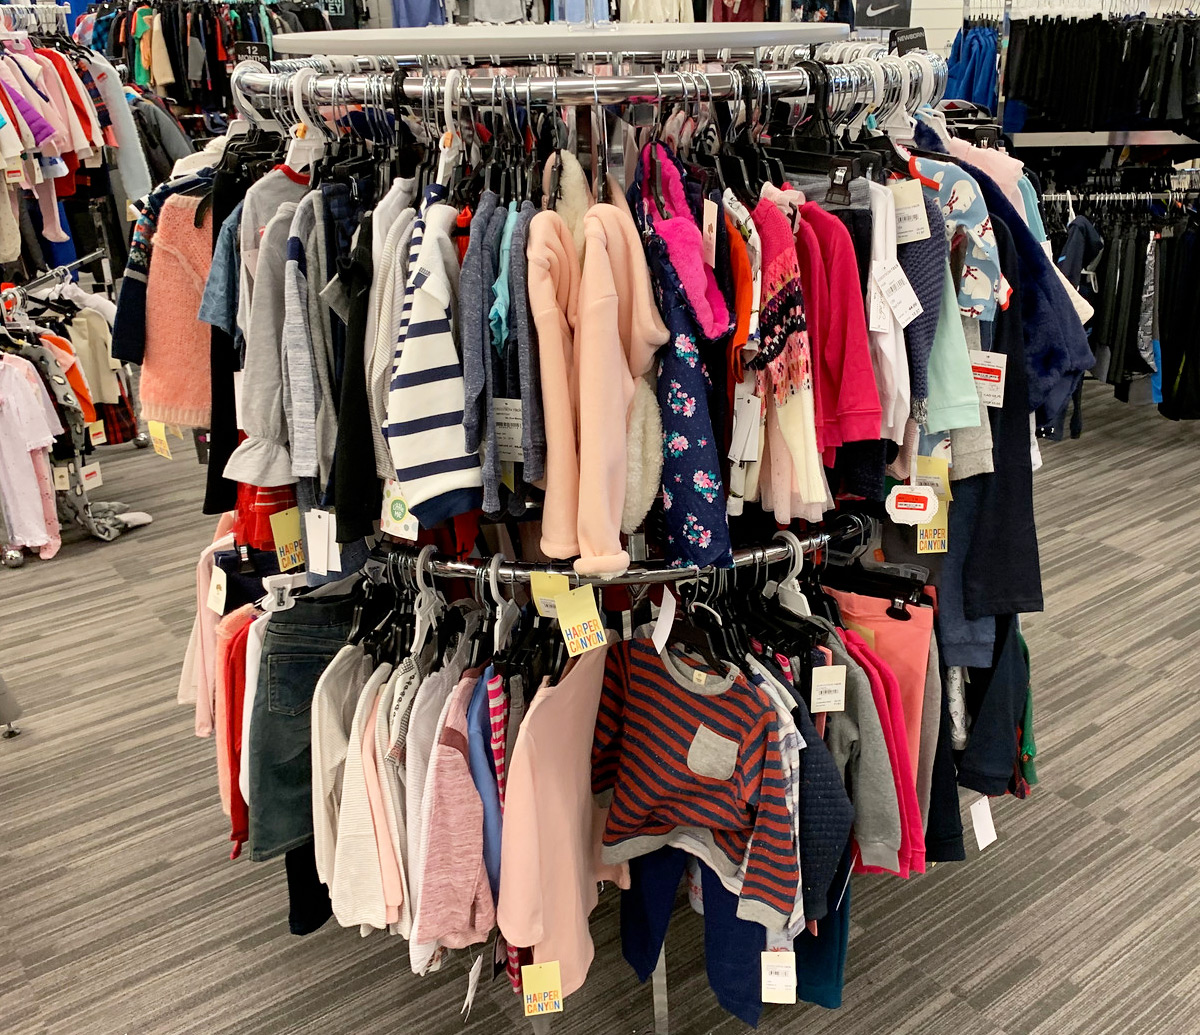 round store display rack with kids and baby apparel hanging on hangers